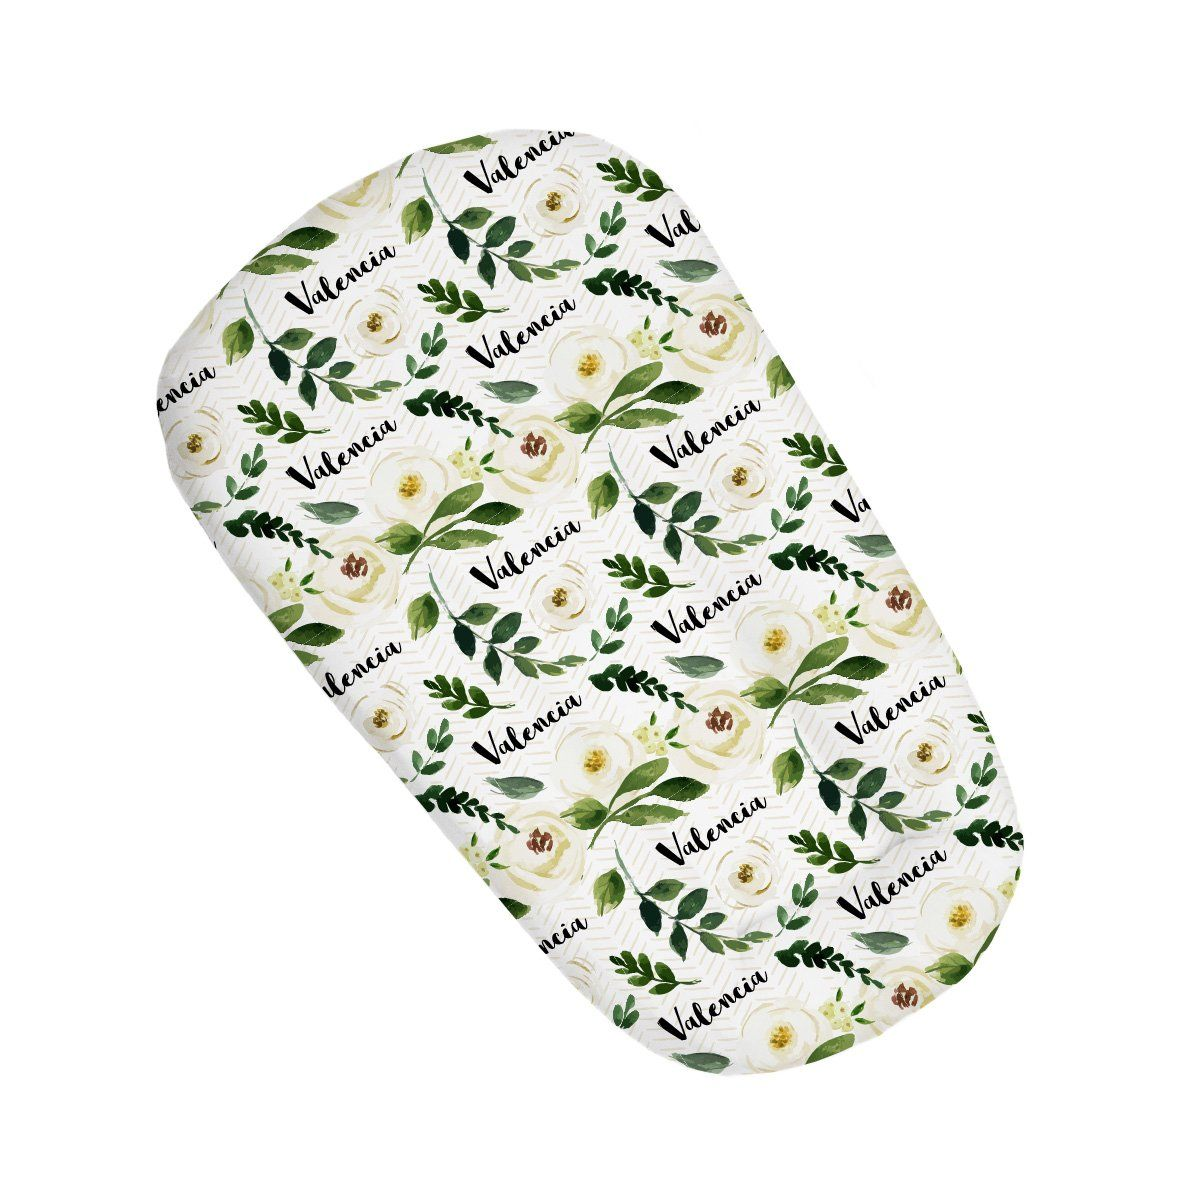 Valencia's Floral Tribe | Sleep Nest Covers for DockATot™